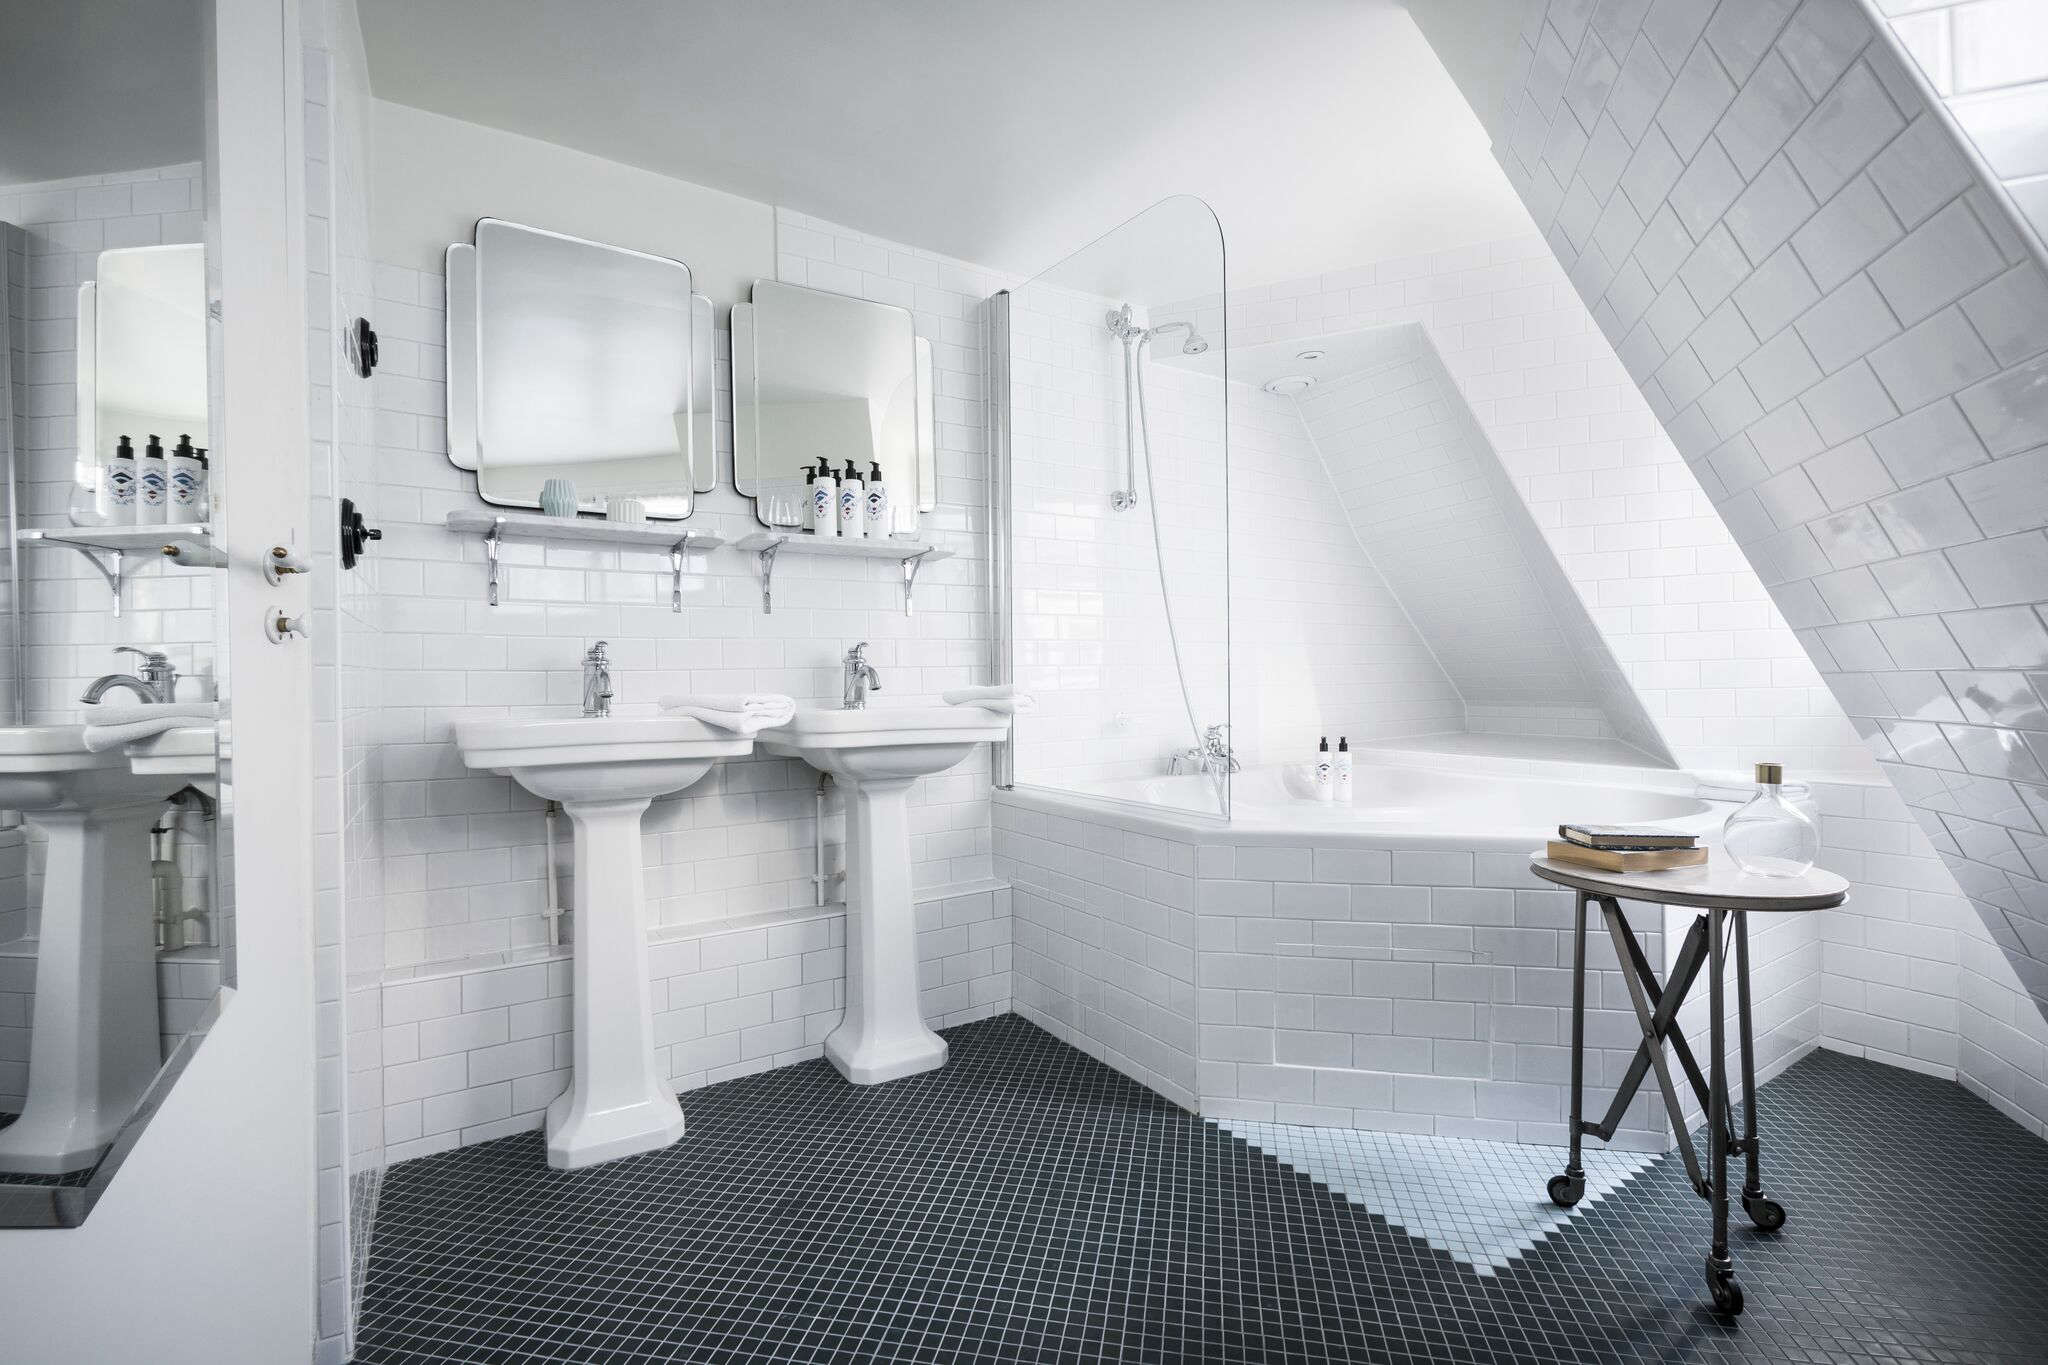 Meilichzon told us she sourced the pedestal sinks from Imperial and Kohler and the mirrors from Objet de Curiosité. She used stacked subway tile on the walls and tub and playfully planted a white tile triangle on the black-tiled floor.